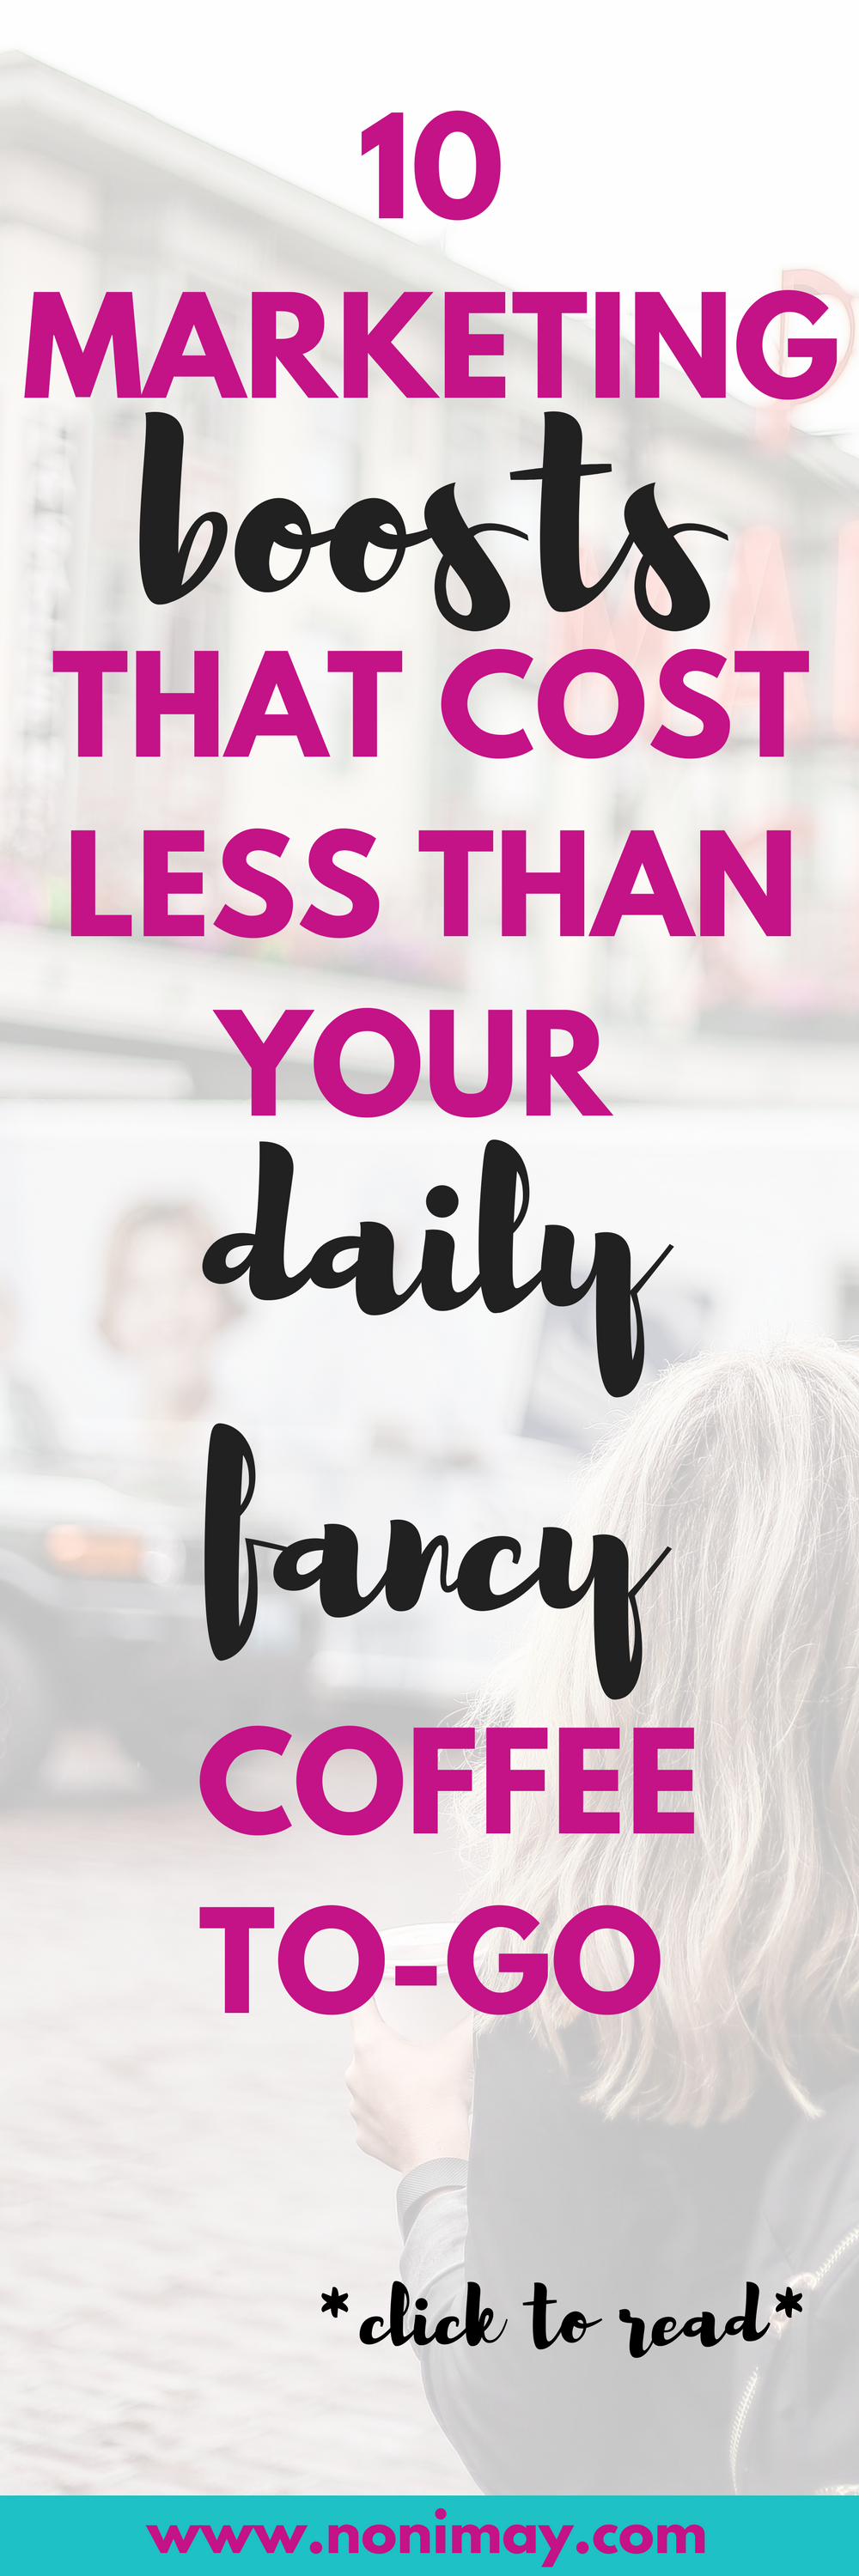 10 marketing boosts that cost less than your daily fancy coffee to-go (1)